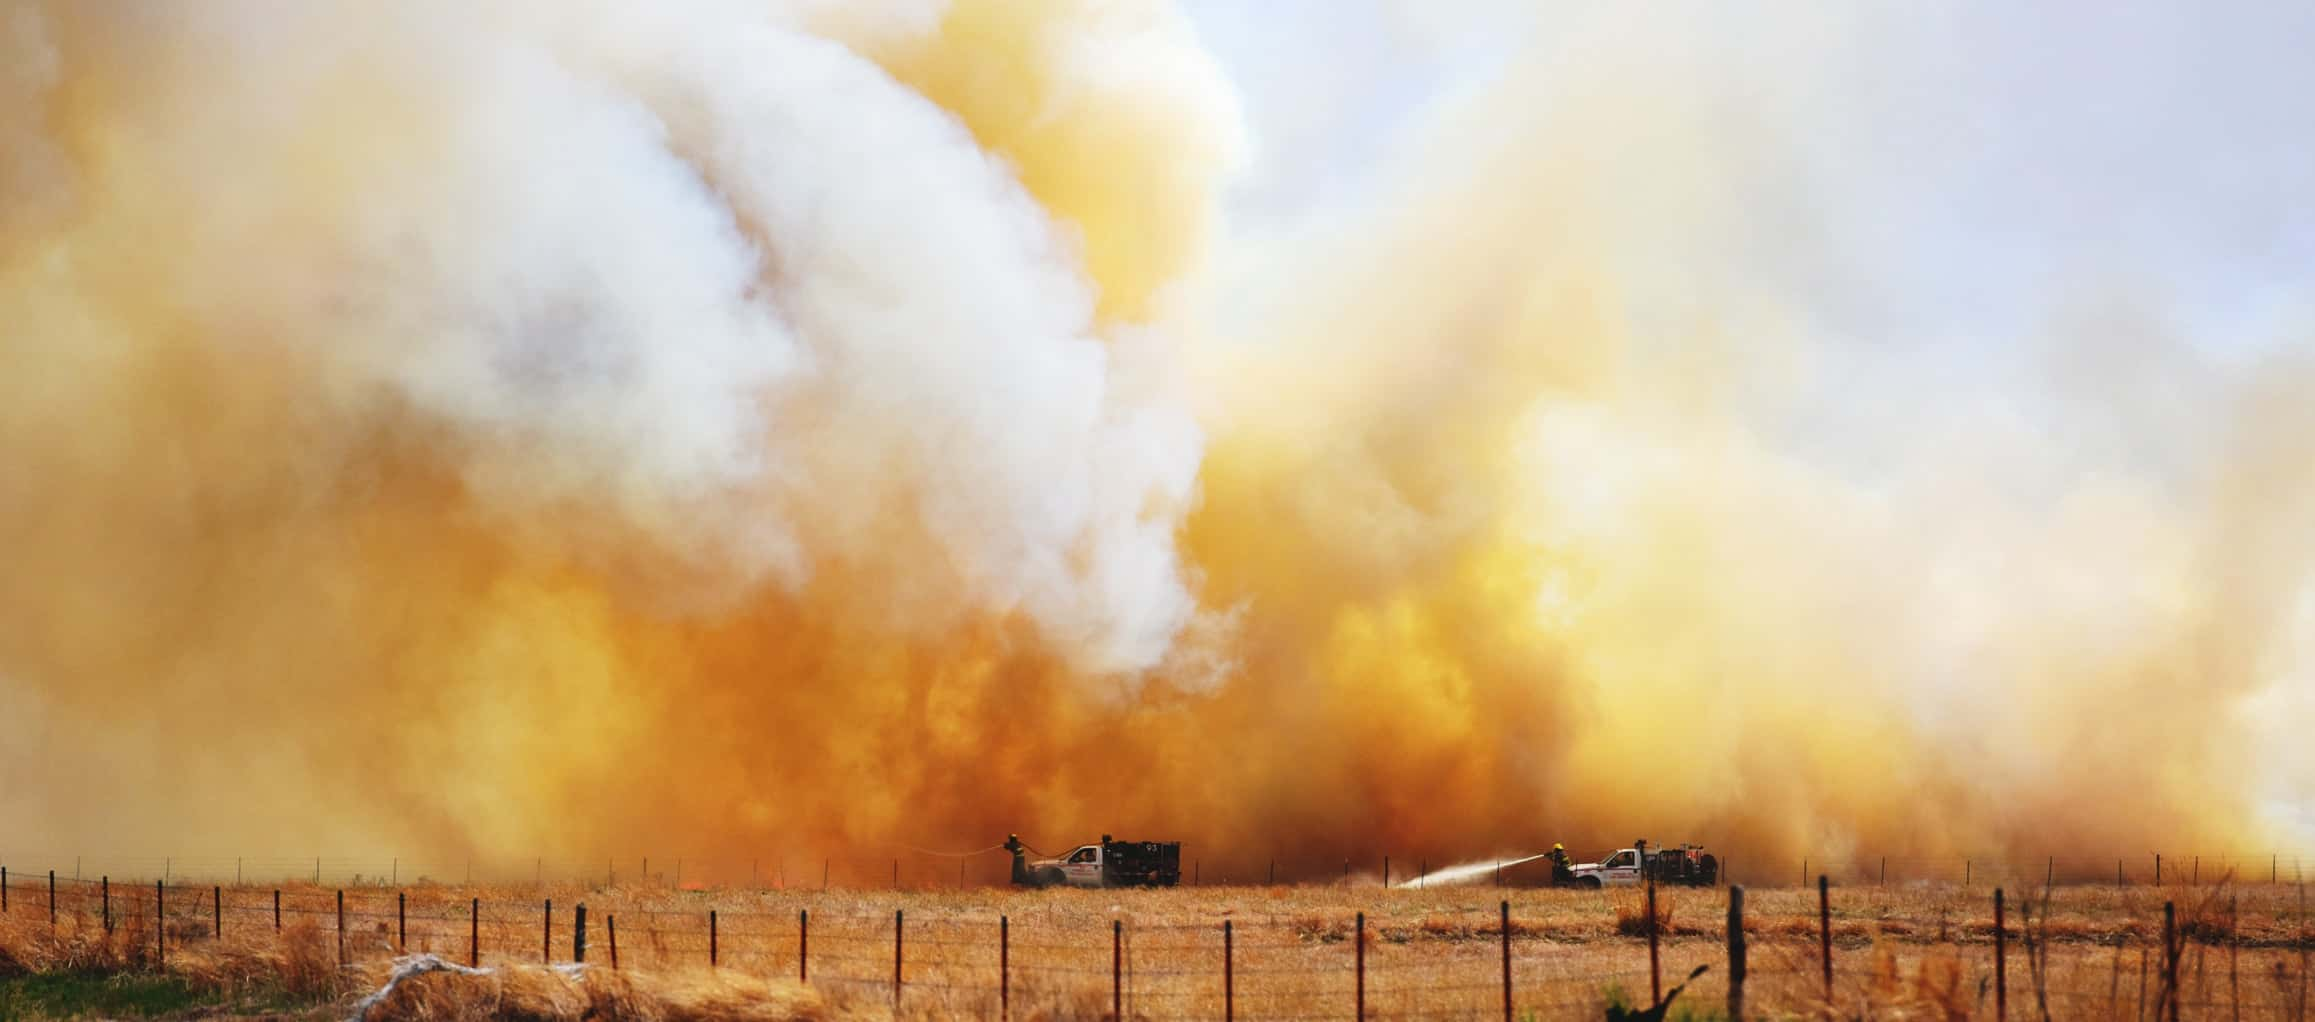 Firefighters battle another outbreak of wind-fueled wildfire west of 83-b